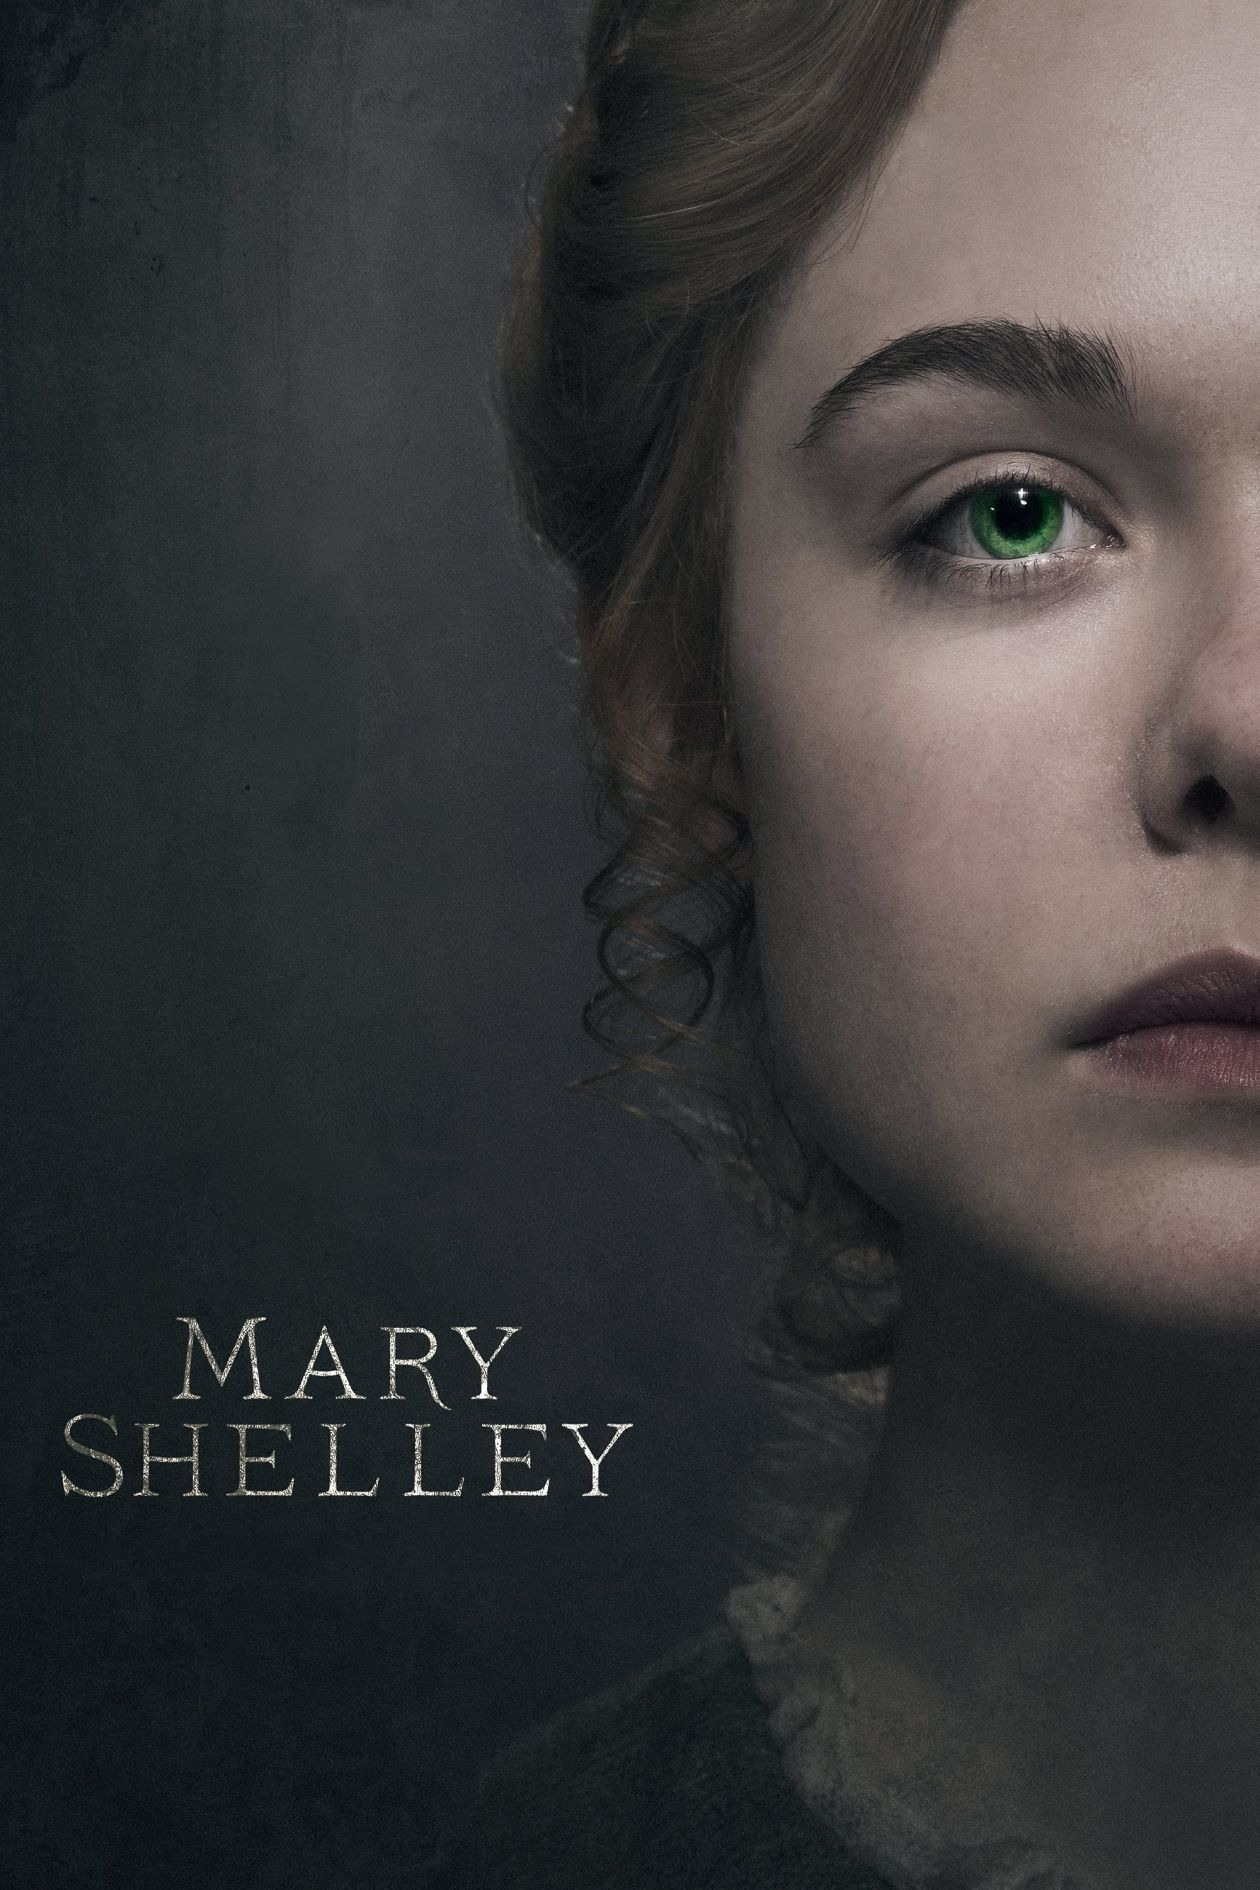 Elle Fanning actress | Mary Shelley / Haifaa Al-Mansour 2017 Movie Poster Affiche film